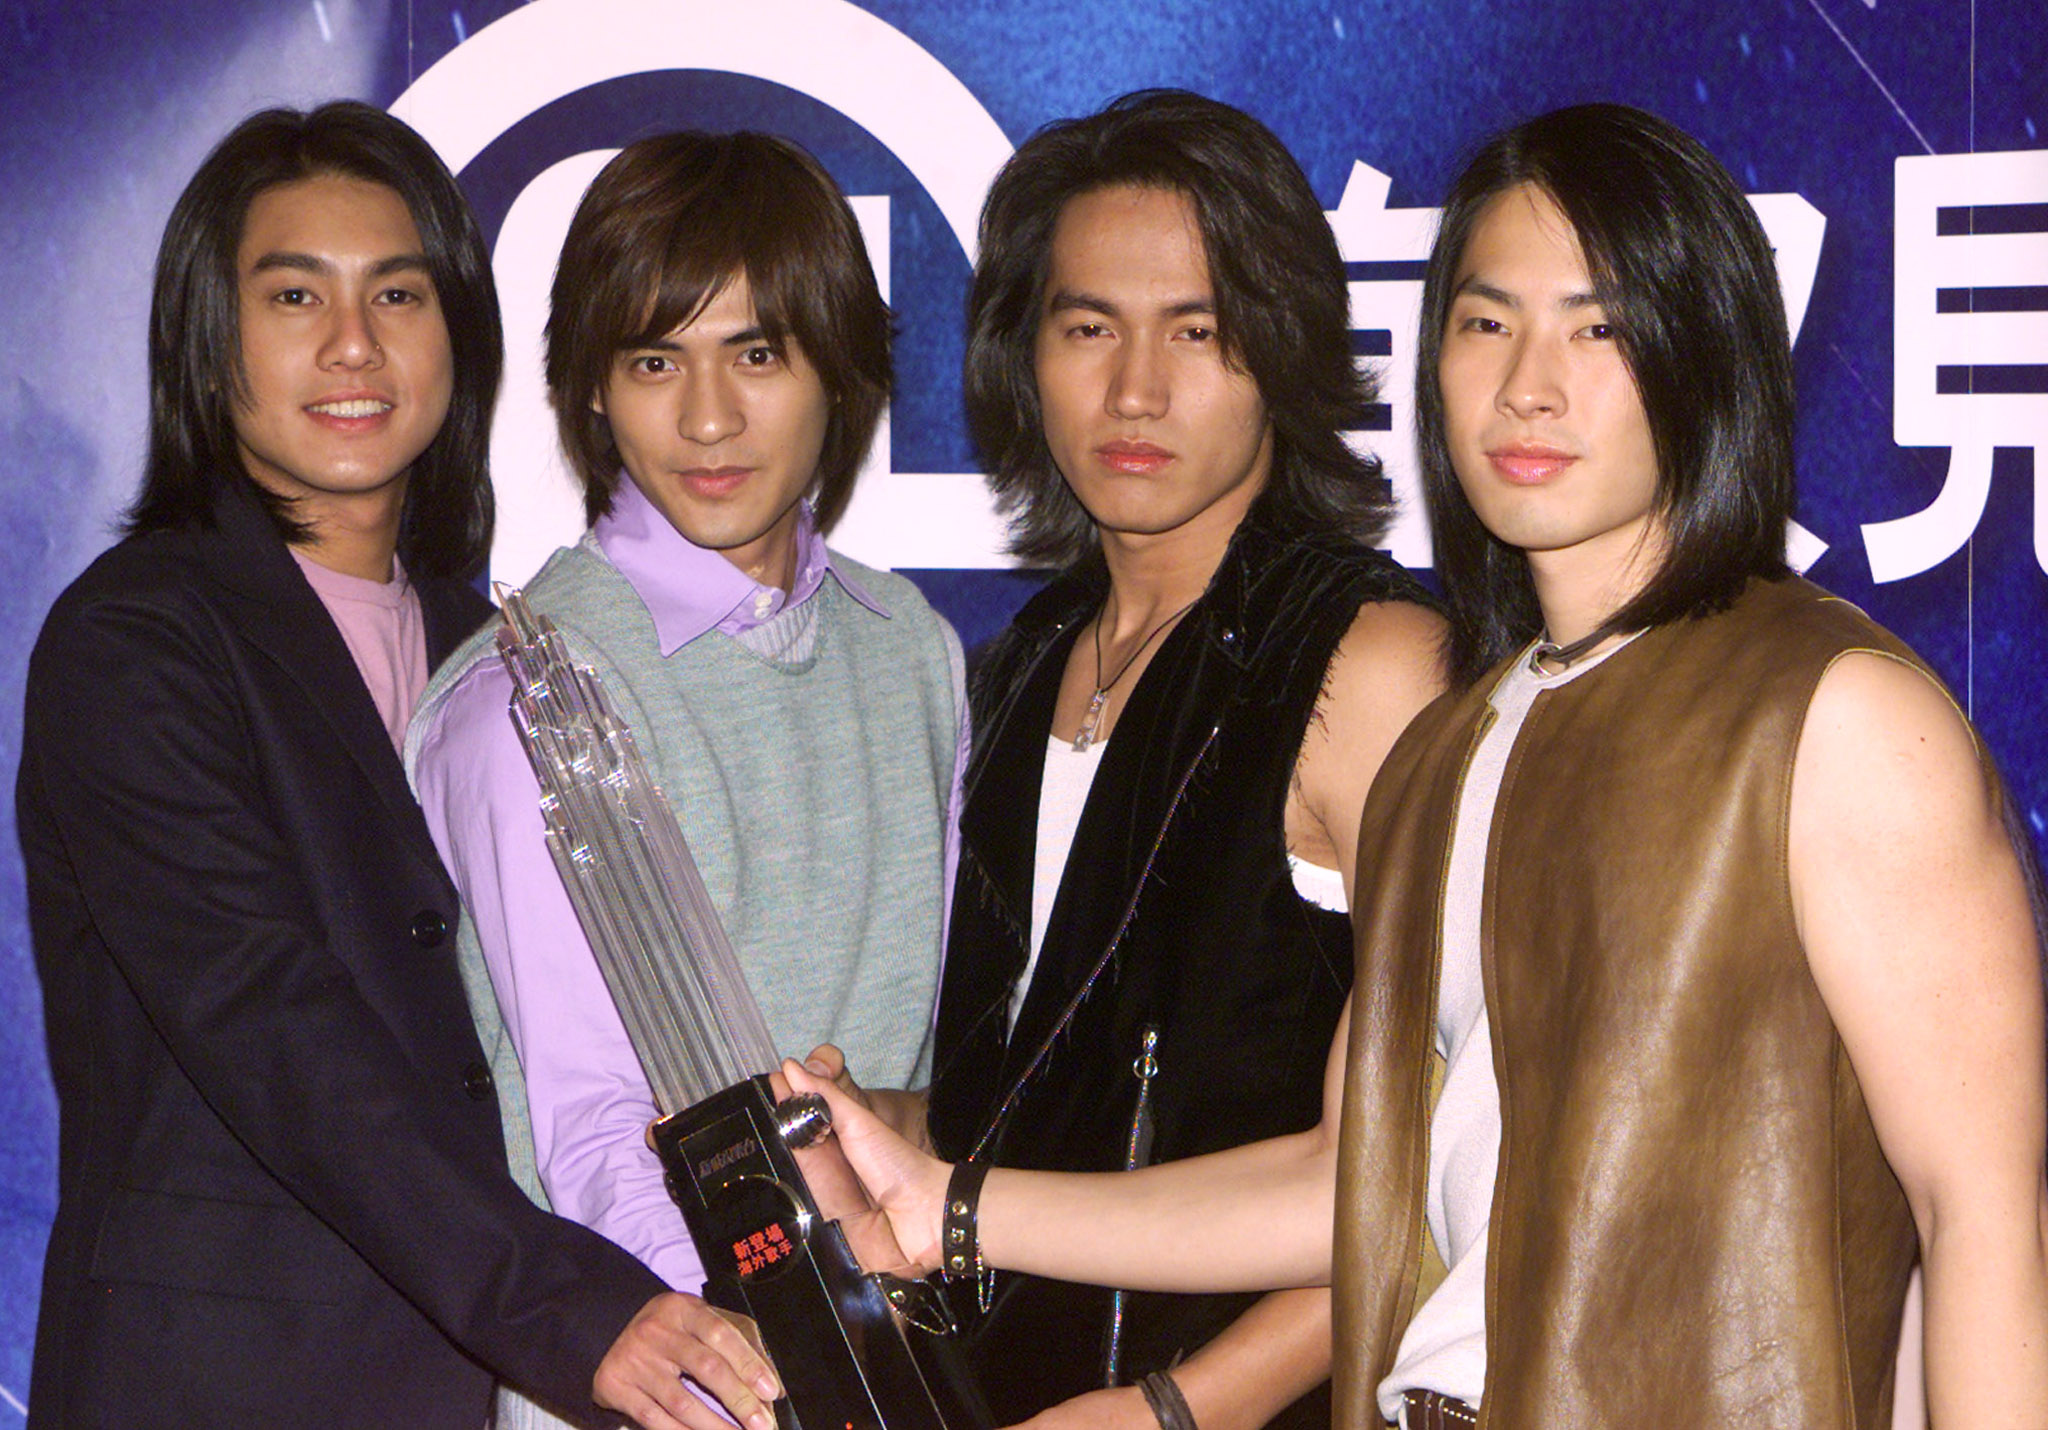 "Members of Taiwan music group F4 (L-R) Ken Zhu, Vic Zhou, Jerry Yan and Vanness Wu hold souvenirs during a news conference in Hong Kong March 8, 2002. F4 will stay in town for five days to meet their fans. Their latest album ""Meteor Rain"" has achieved 1 million copies in countries throughout the Asia region."